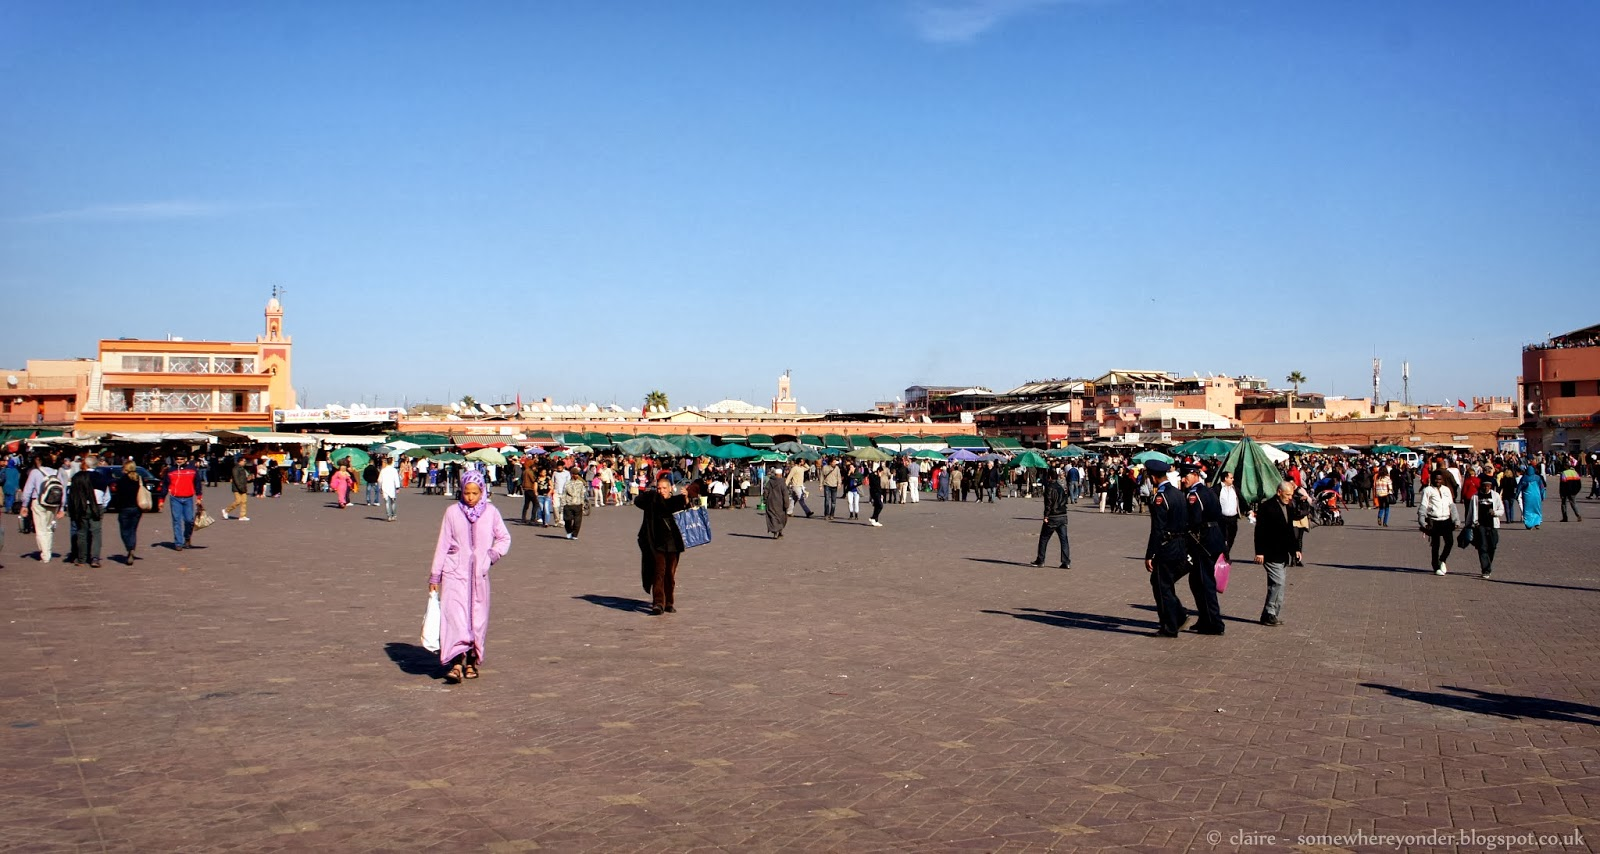 Locals walk through Djemaa El-Fna Marrakech